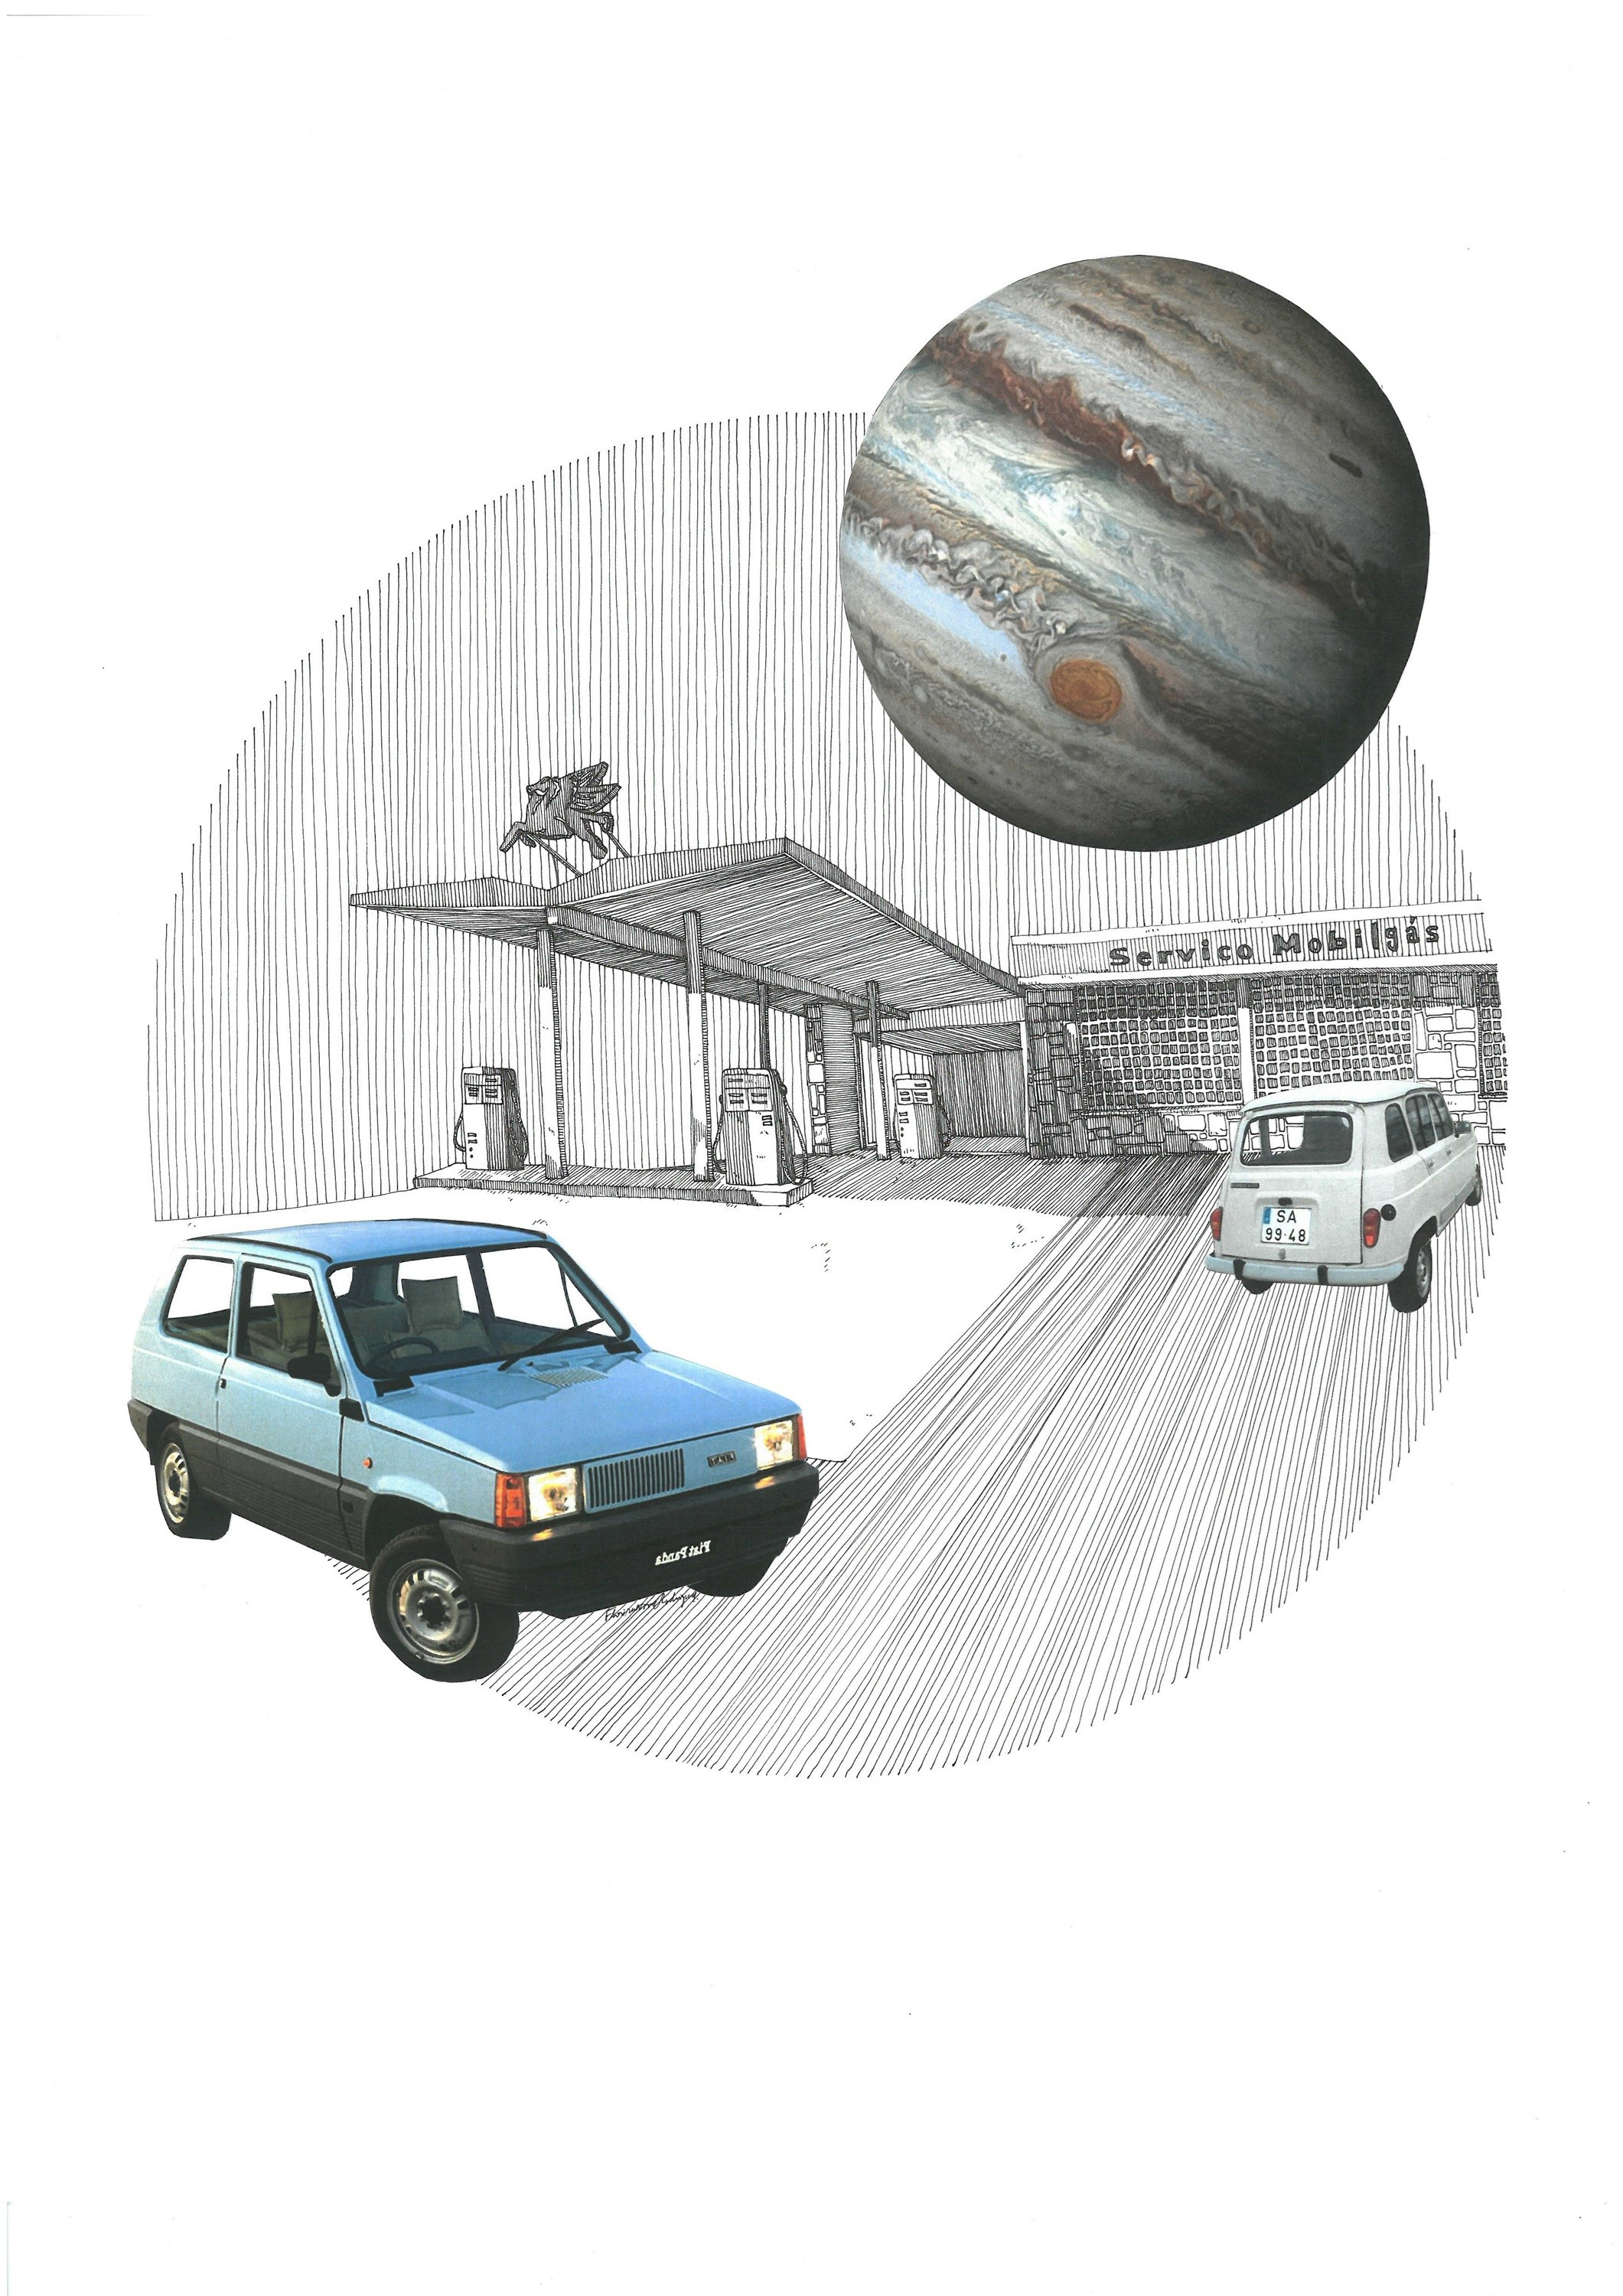 Fiat Panda, original Architecture Collage Drawing and Illustration by Florisa Novo Rodrigues